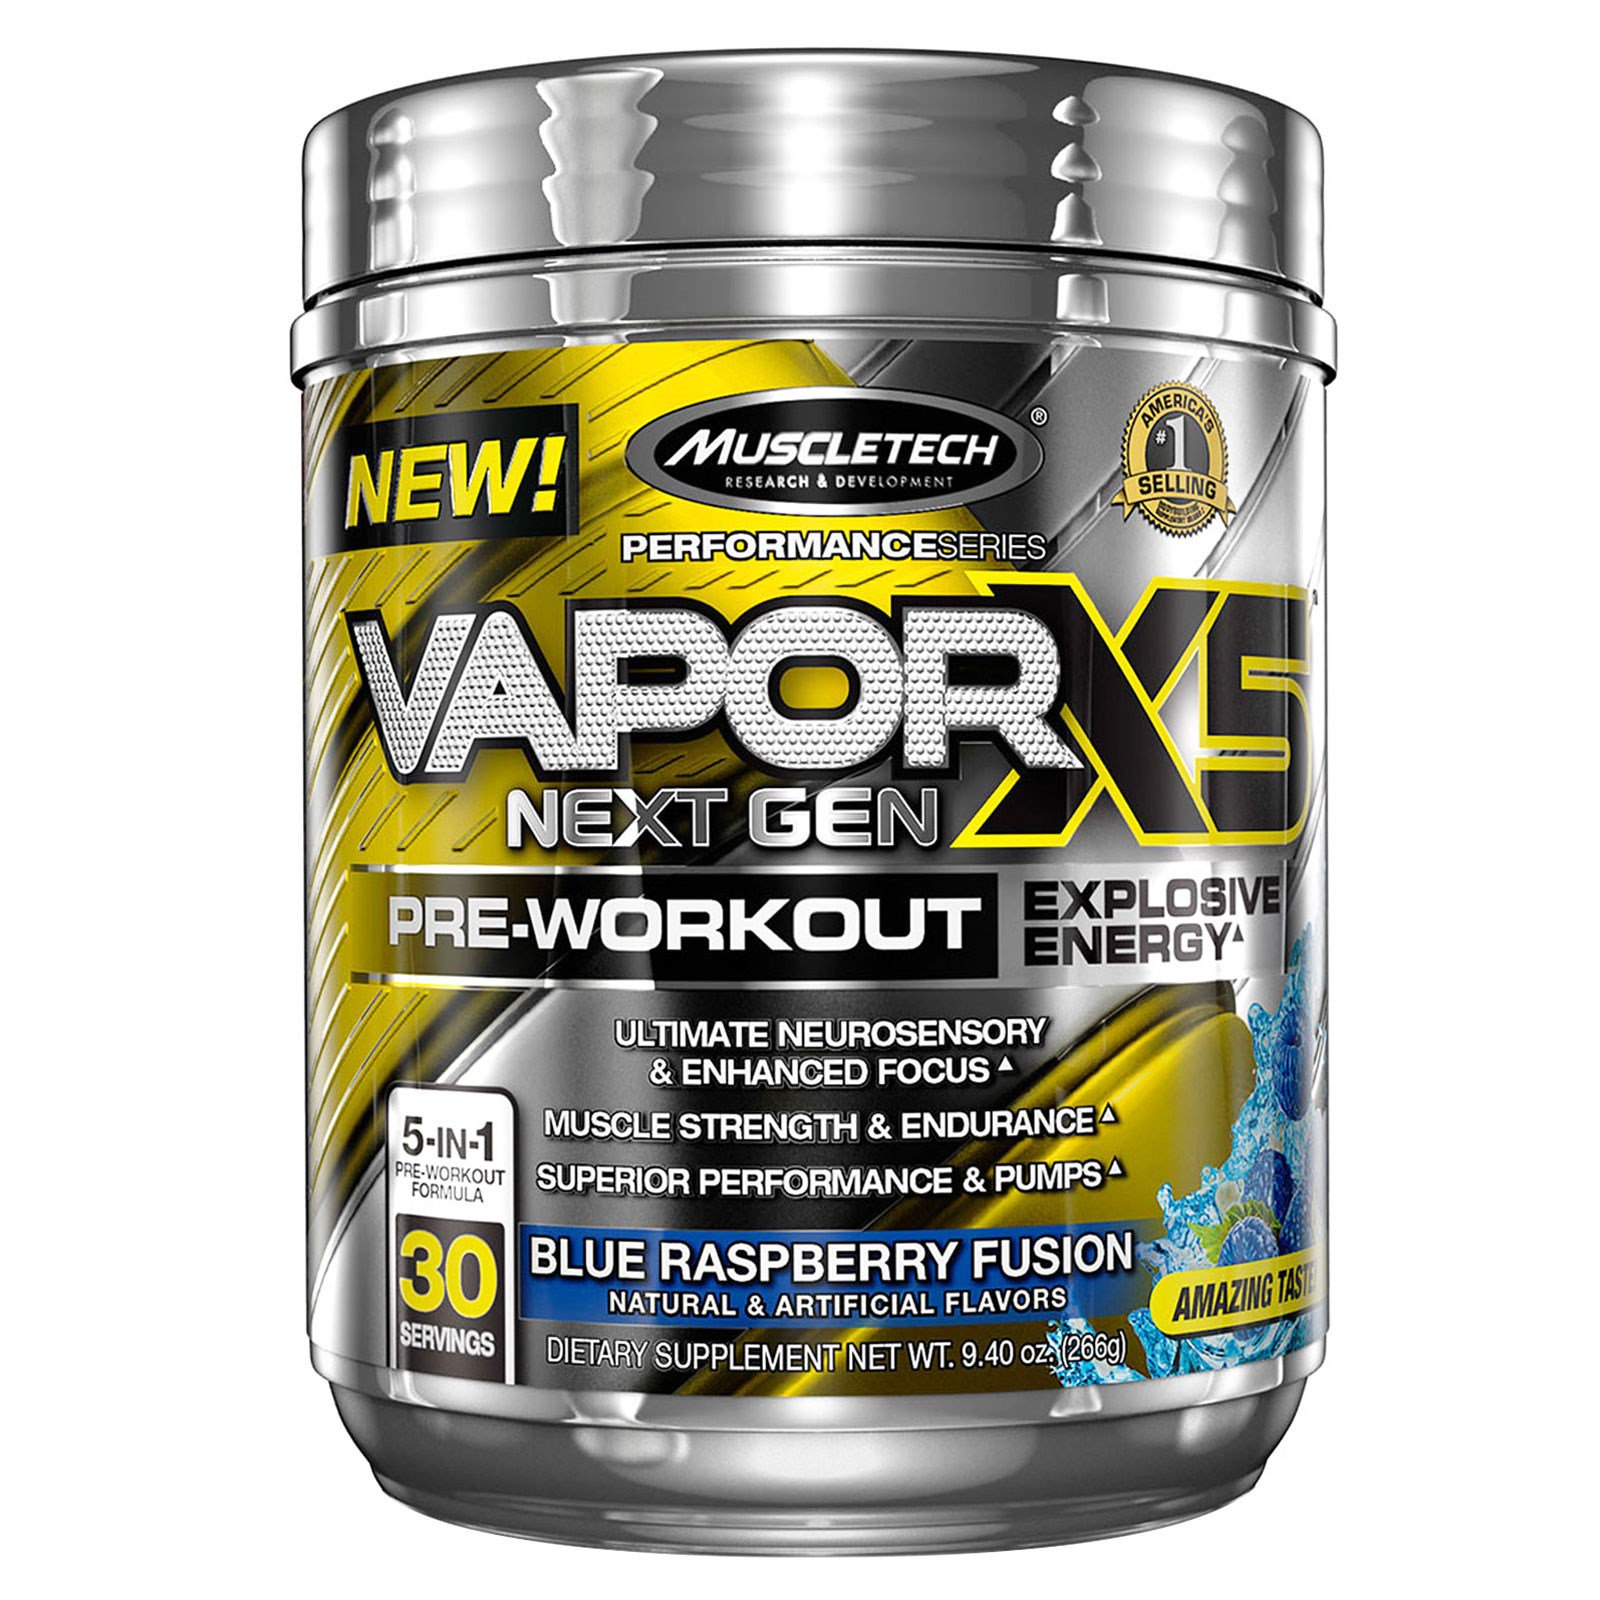 Muscletech, Vapor X5 Next Gen, Pre-Workout, Blue Raspberry Fusion, 9.40 oz (266 g)